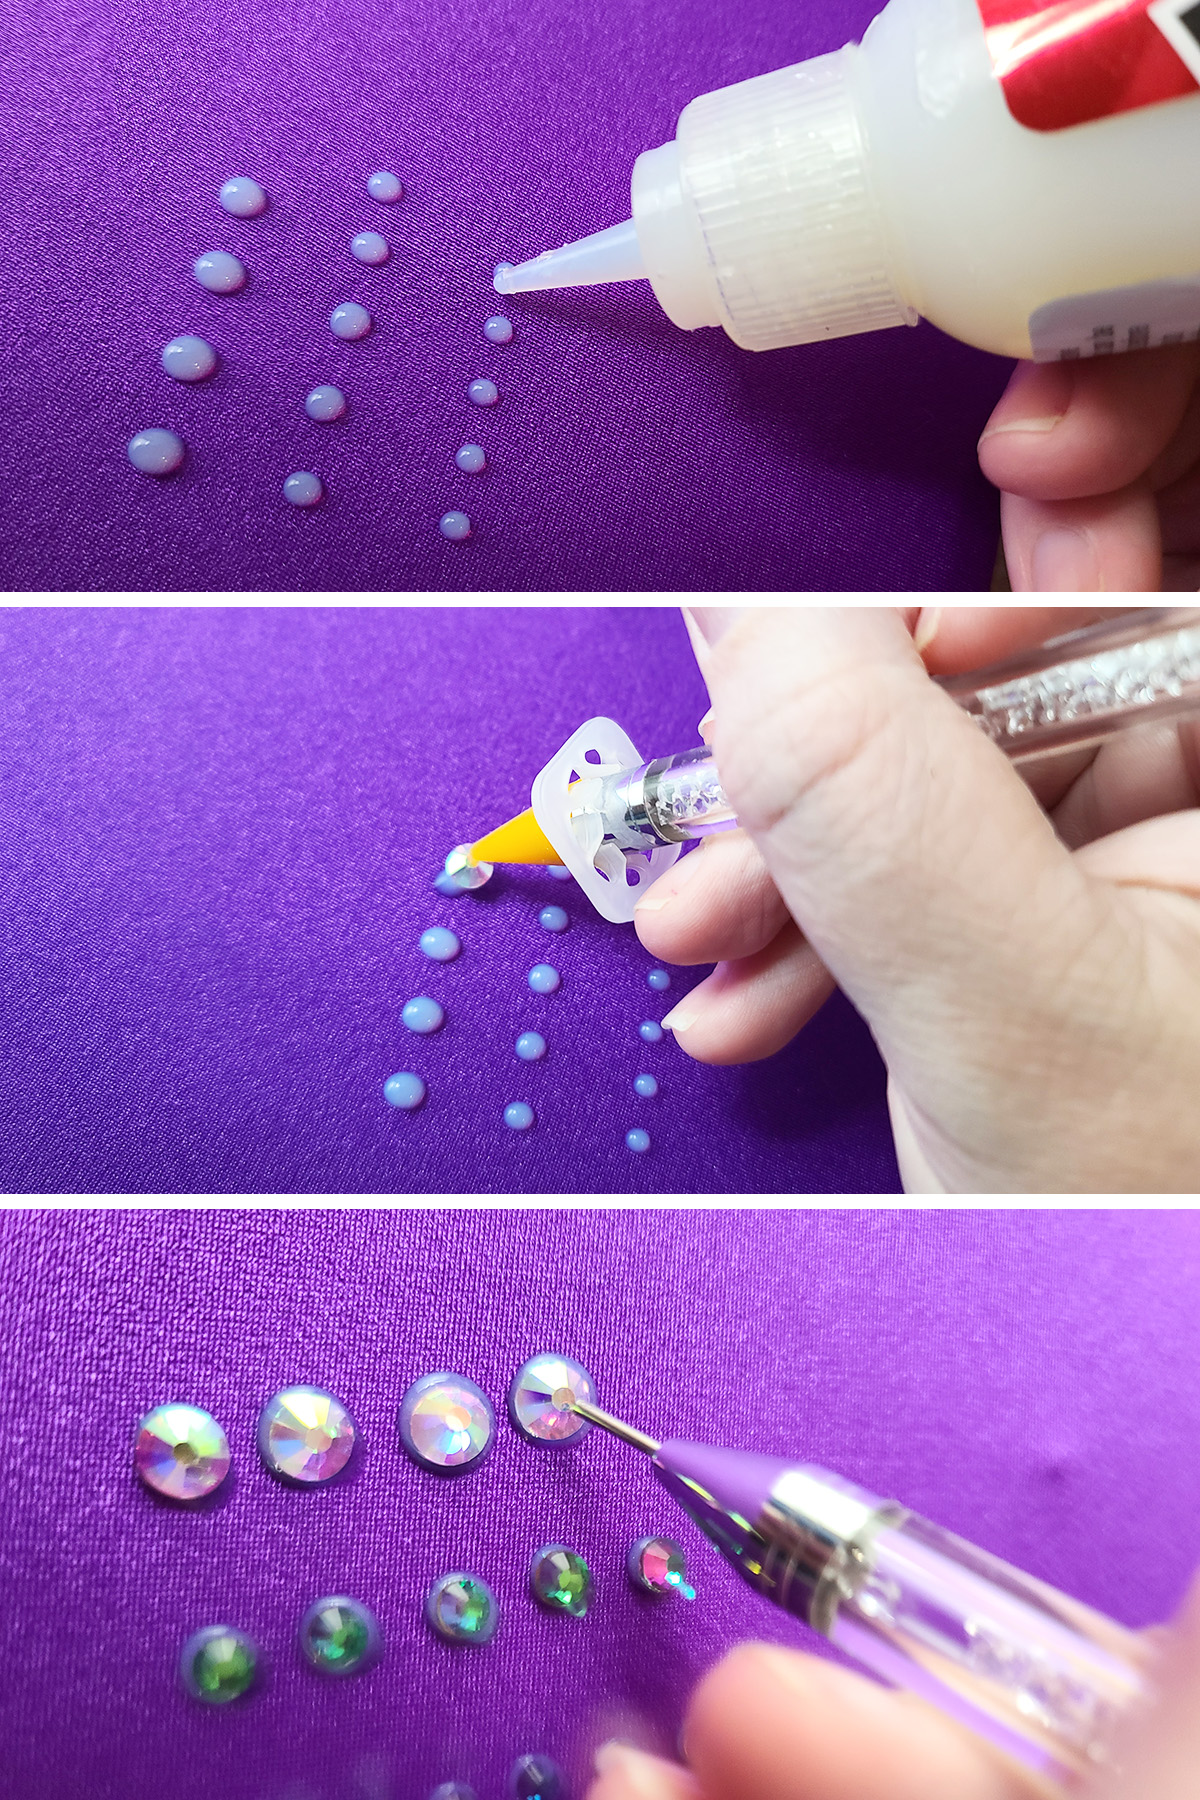 A three part compilation image showing glue being piped onto a purple skating dress, crystals being placed, and the crystals being pushed down into place.